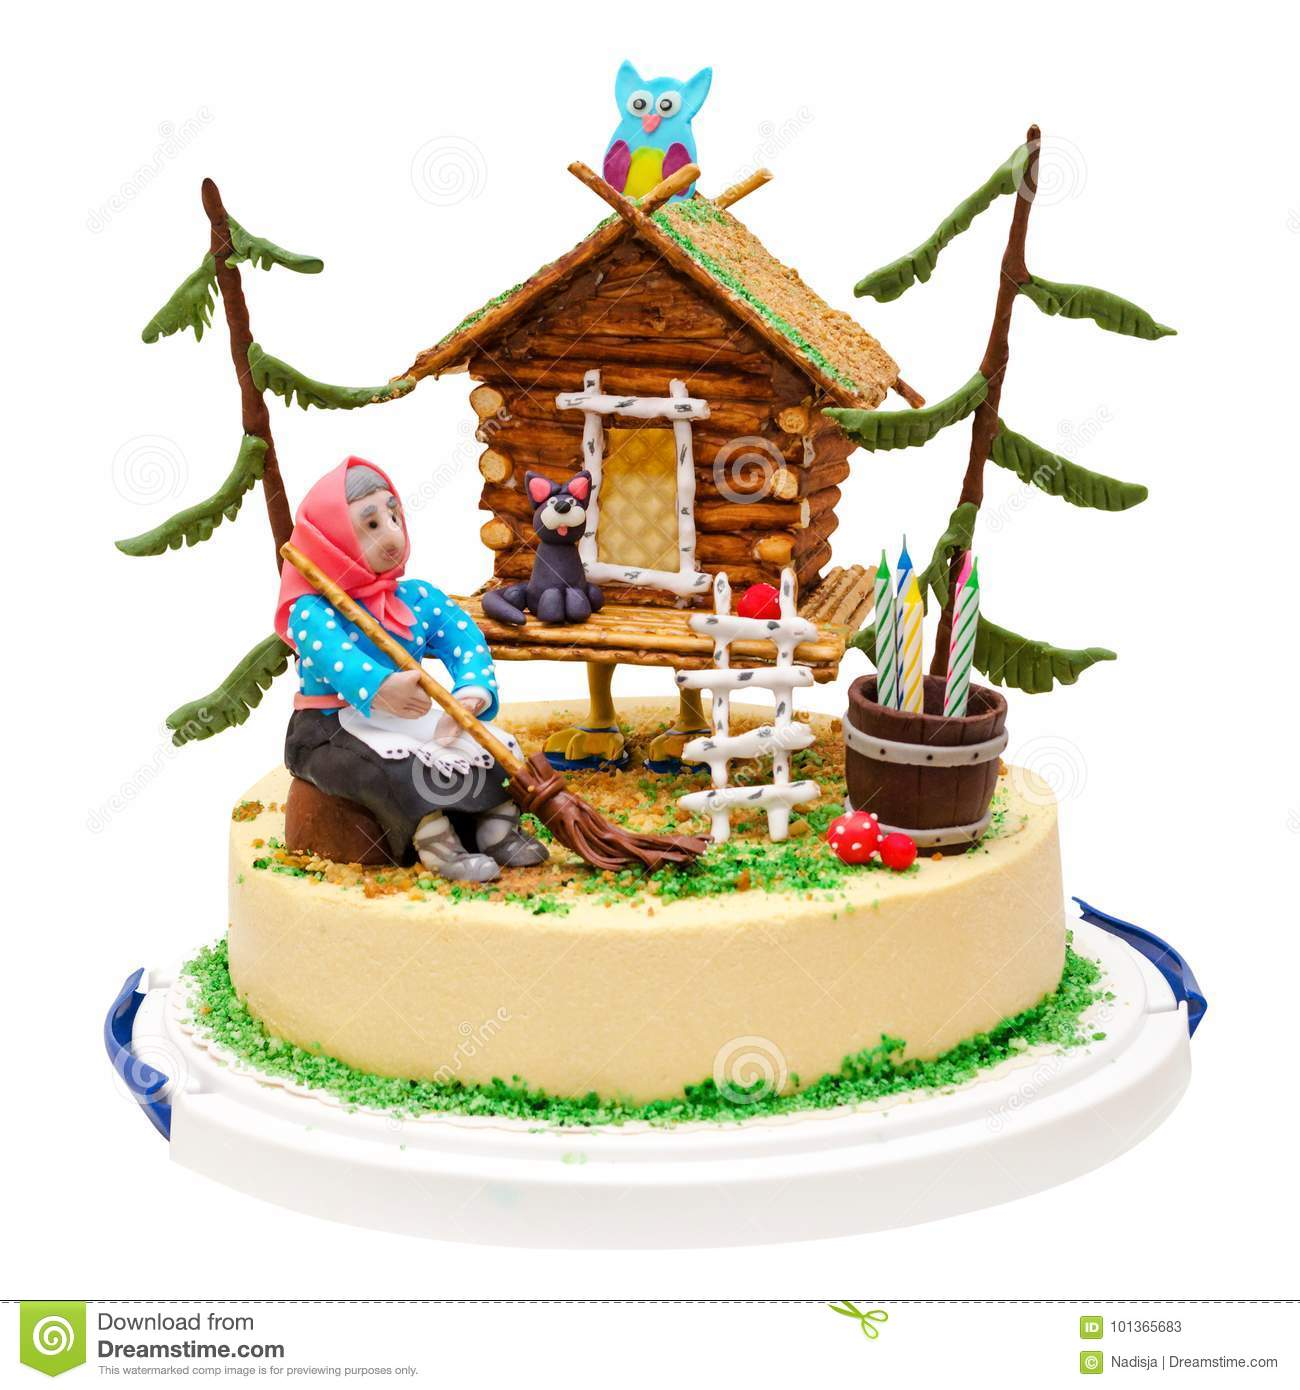 Witch and house cake with forest, owl, cat, candle, isolated on white